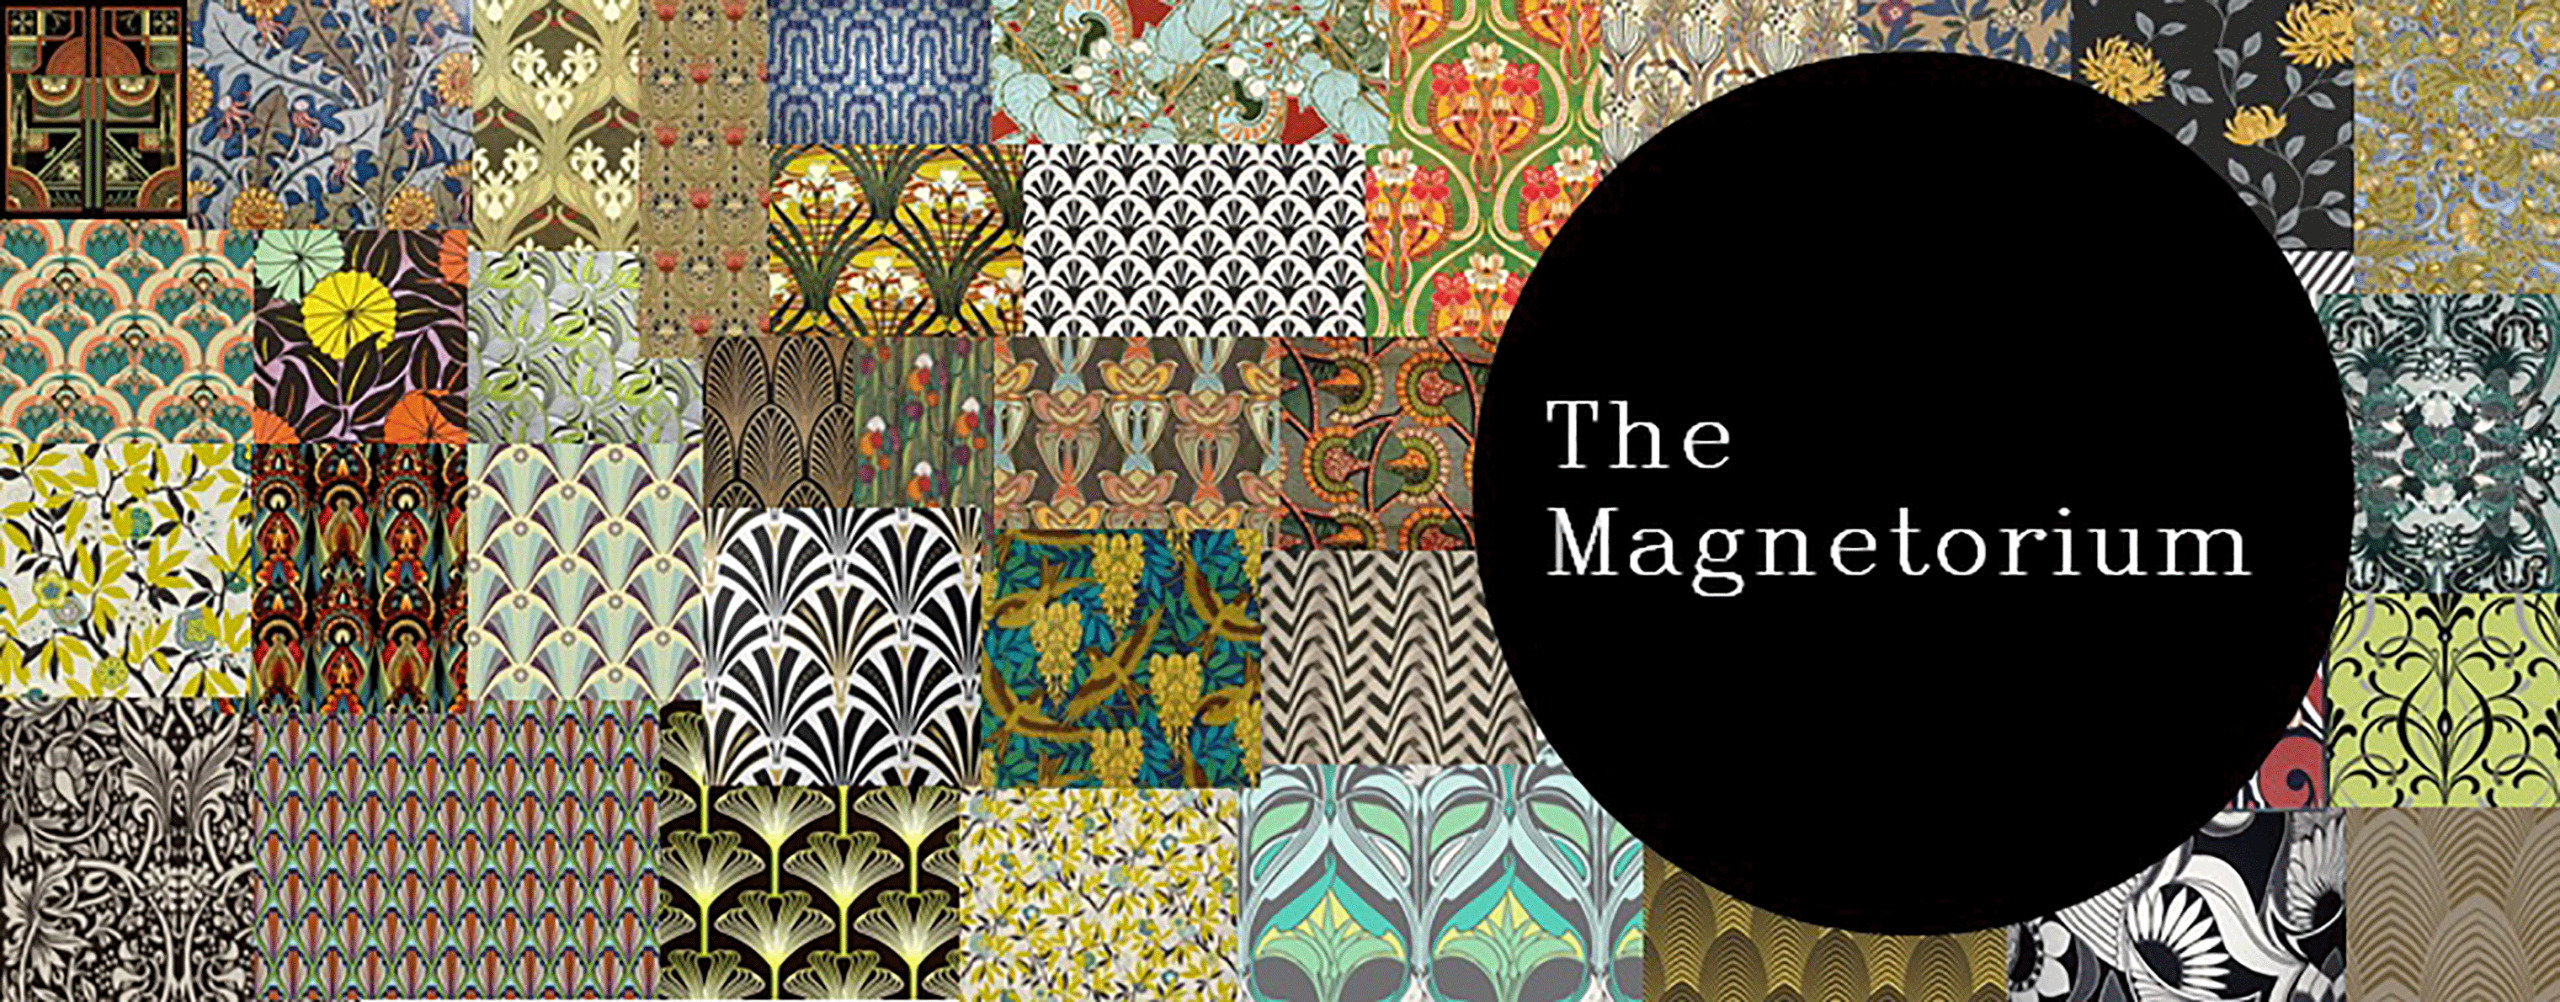 (@themagnetorium) Cover Image